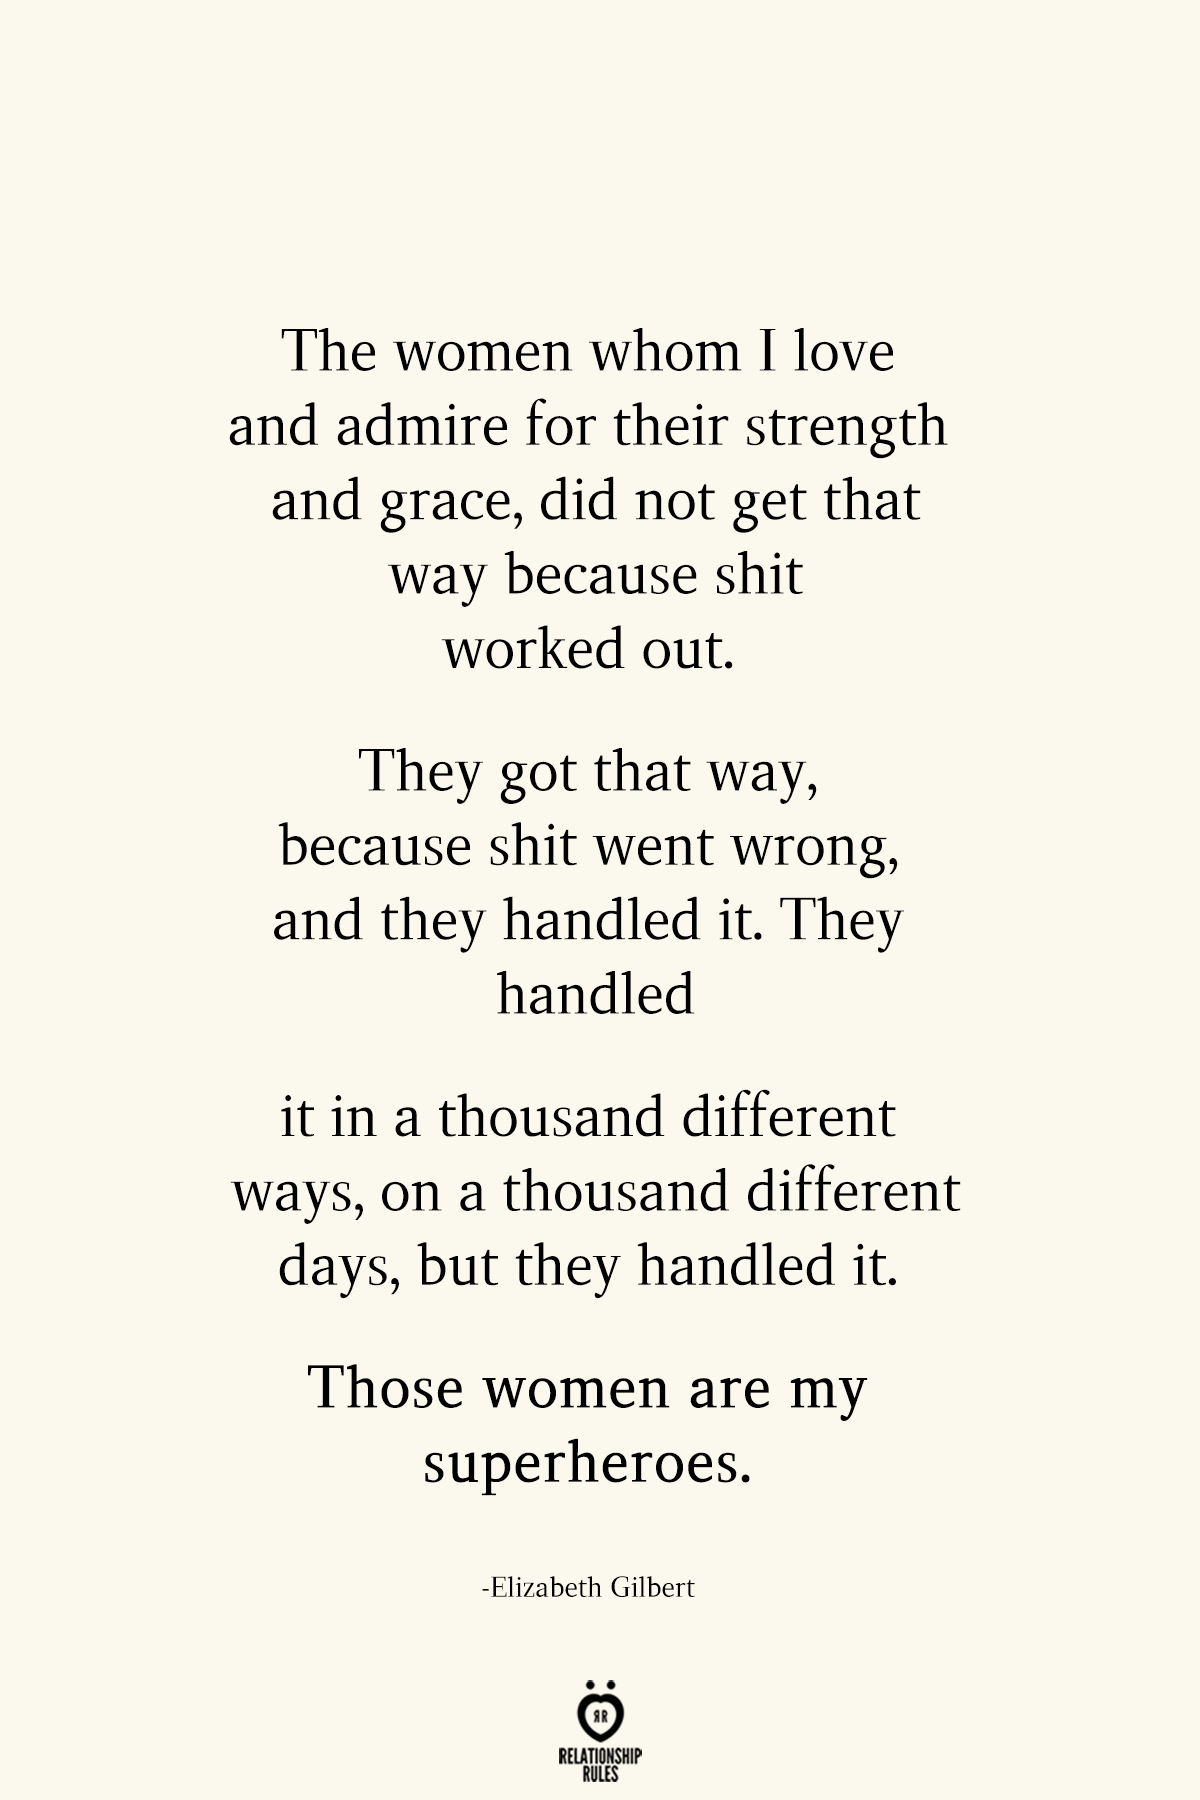 The Women Whom I Love And Admire For Their Strength And Grace Elizabeth Gilbert Quotes True Quotes People Quotes